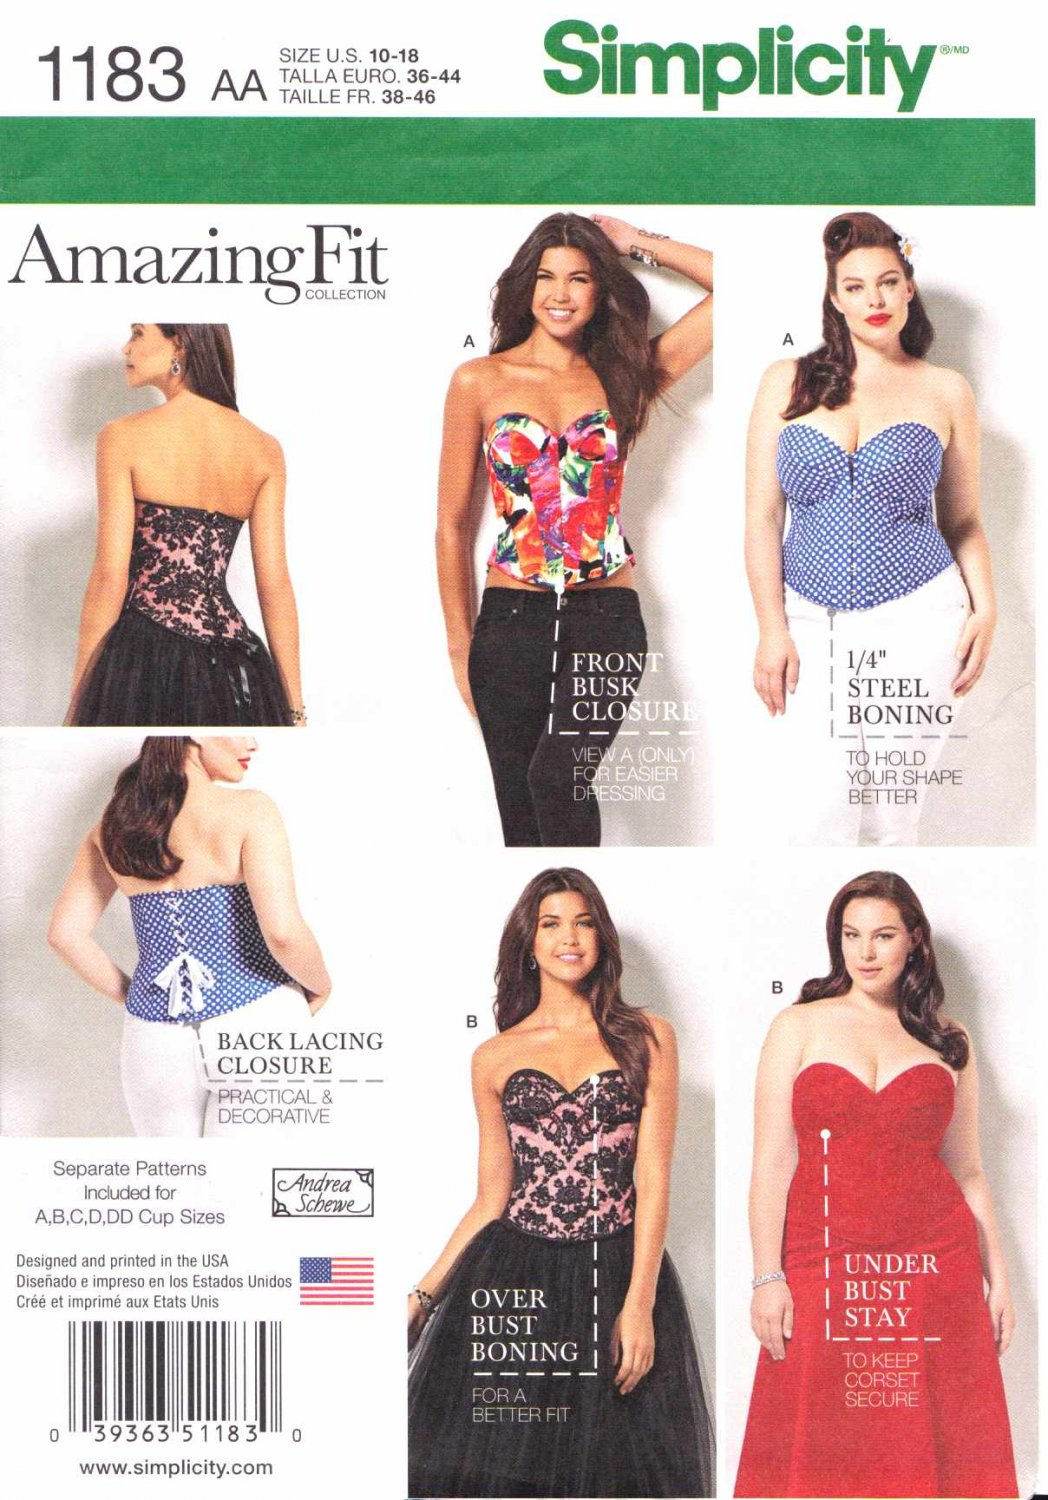 Simplicity Sewing Pattern 1183 Women's Plus Sizes 20W-28W Amazing Fit Corset A-DD Bust Cups